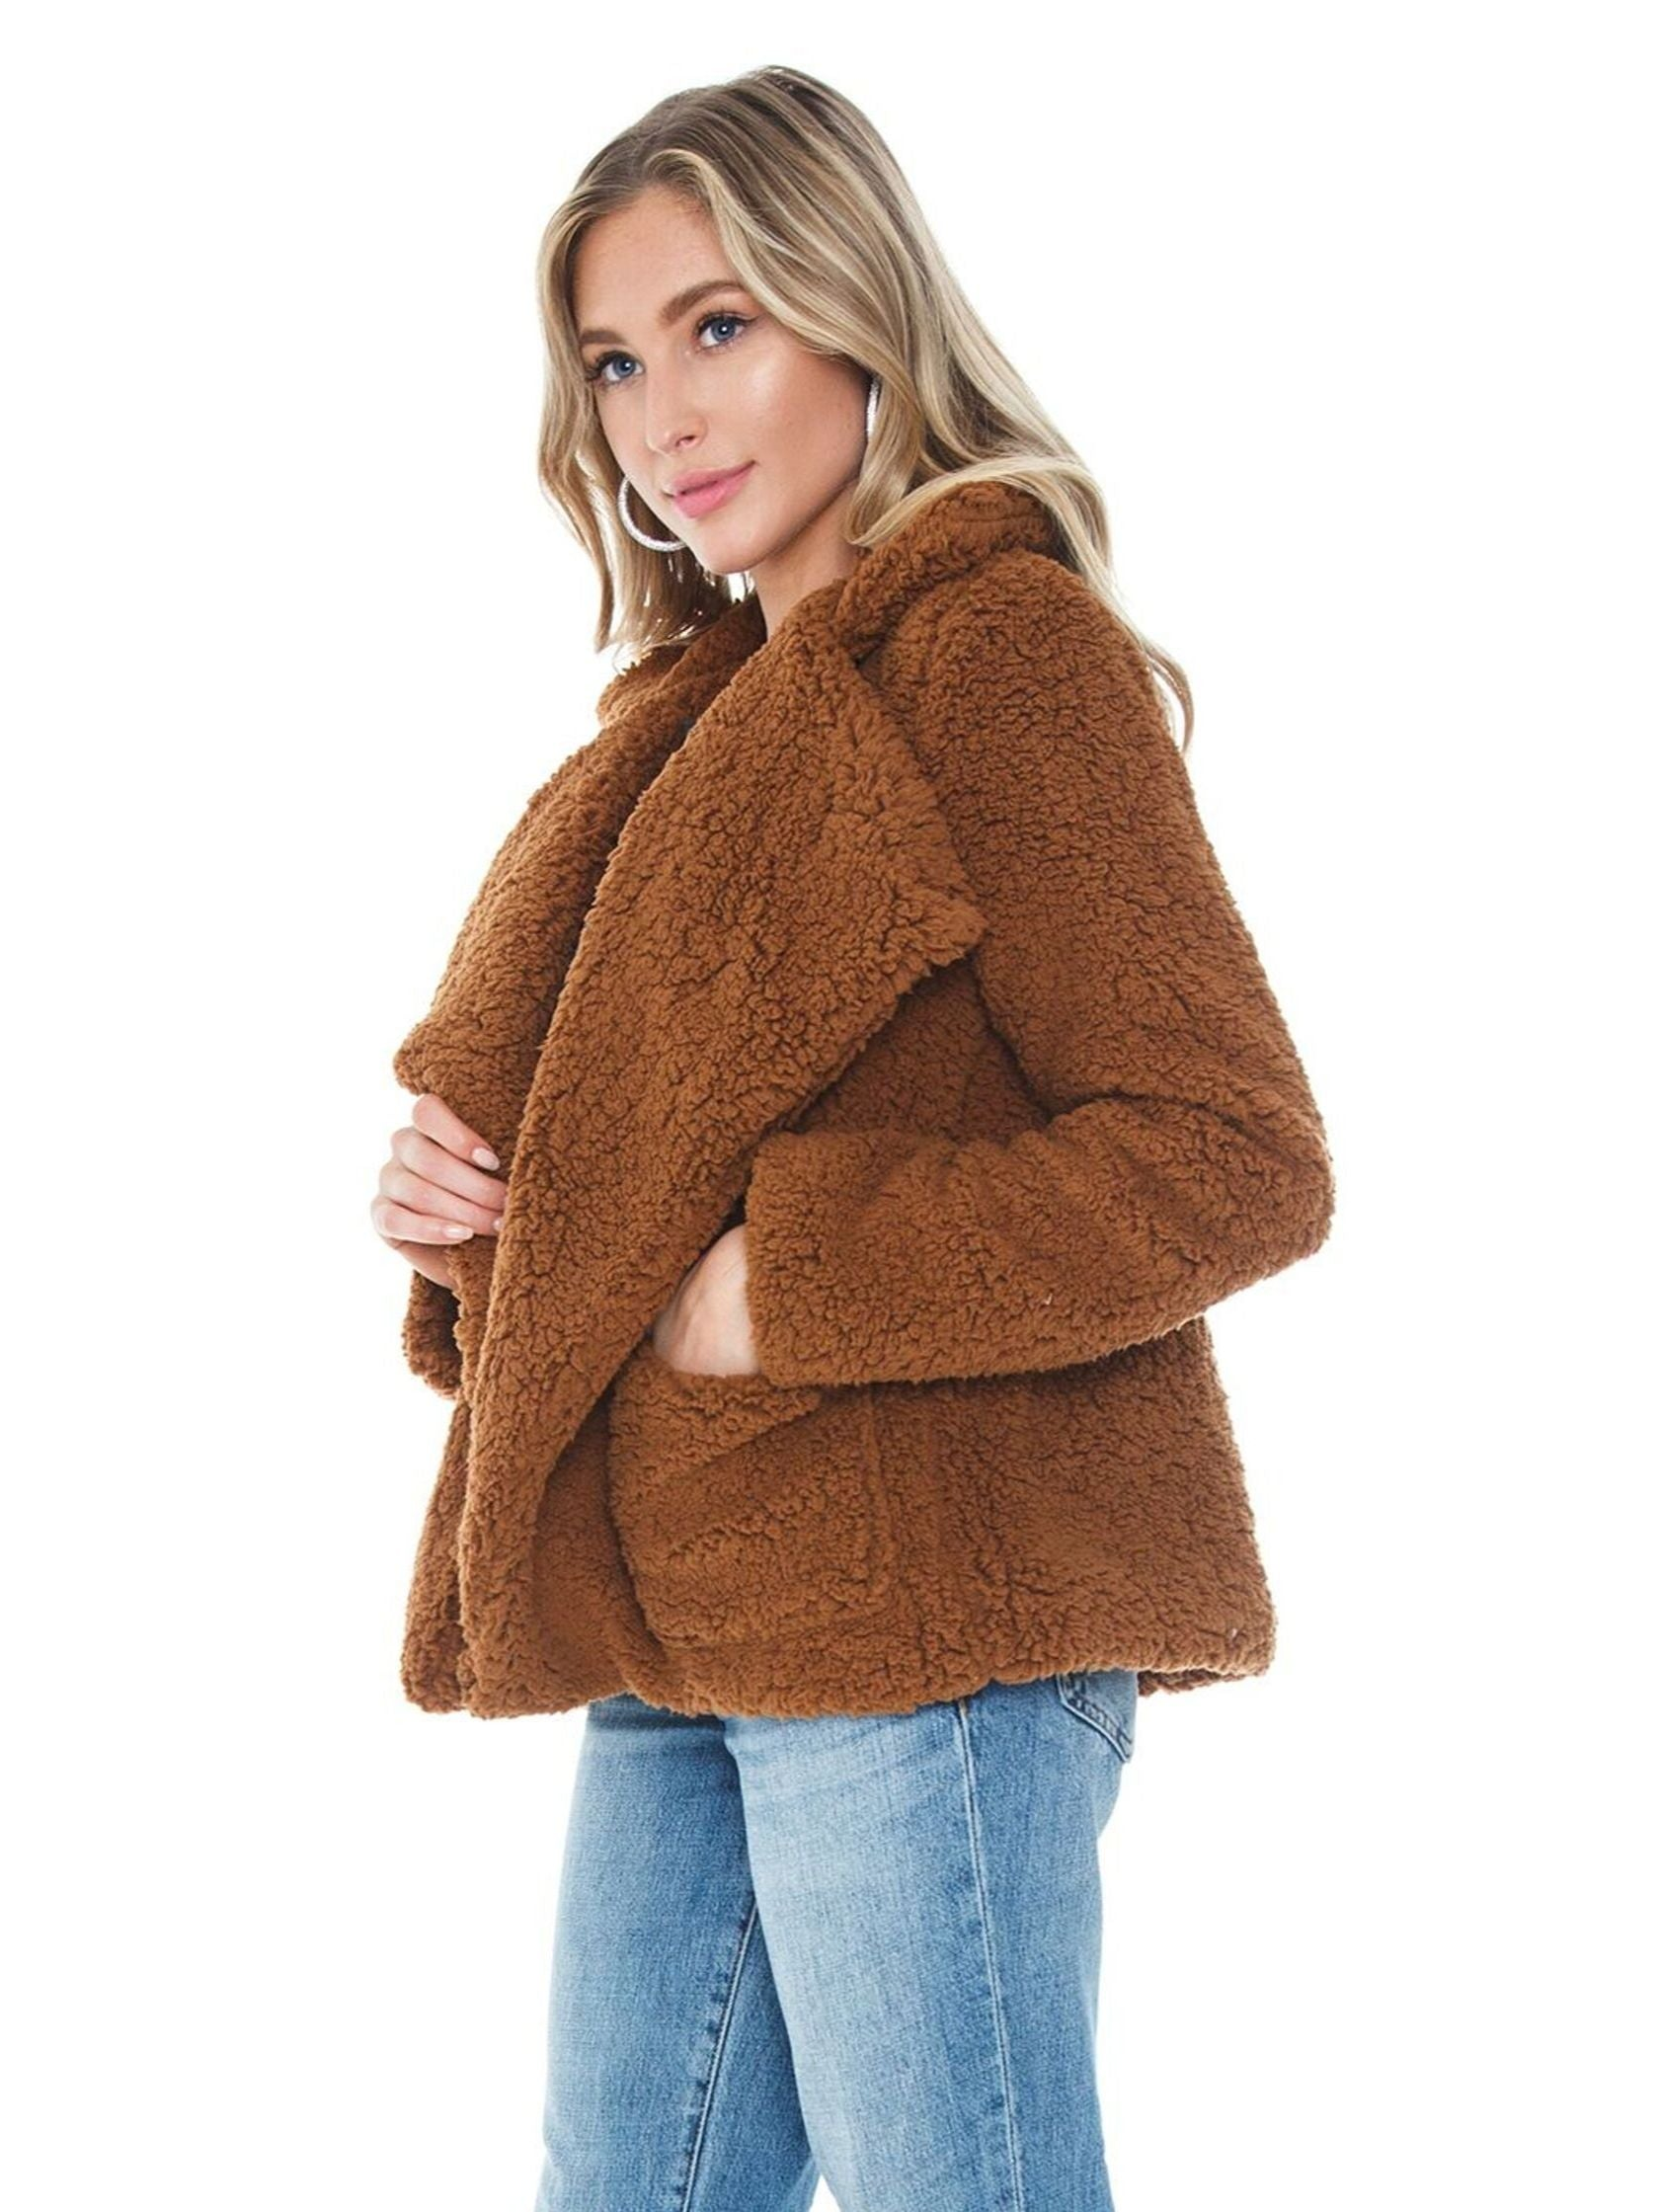 Women wearing a jacket rental from BB Dakota called Soft Skills Faux Fur Jacket